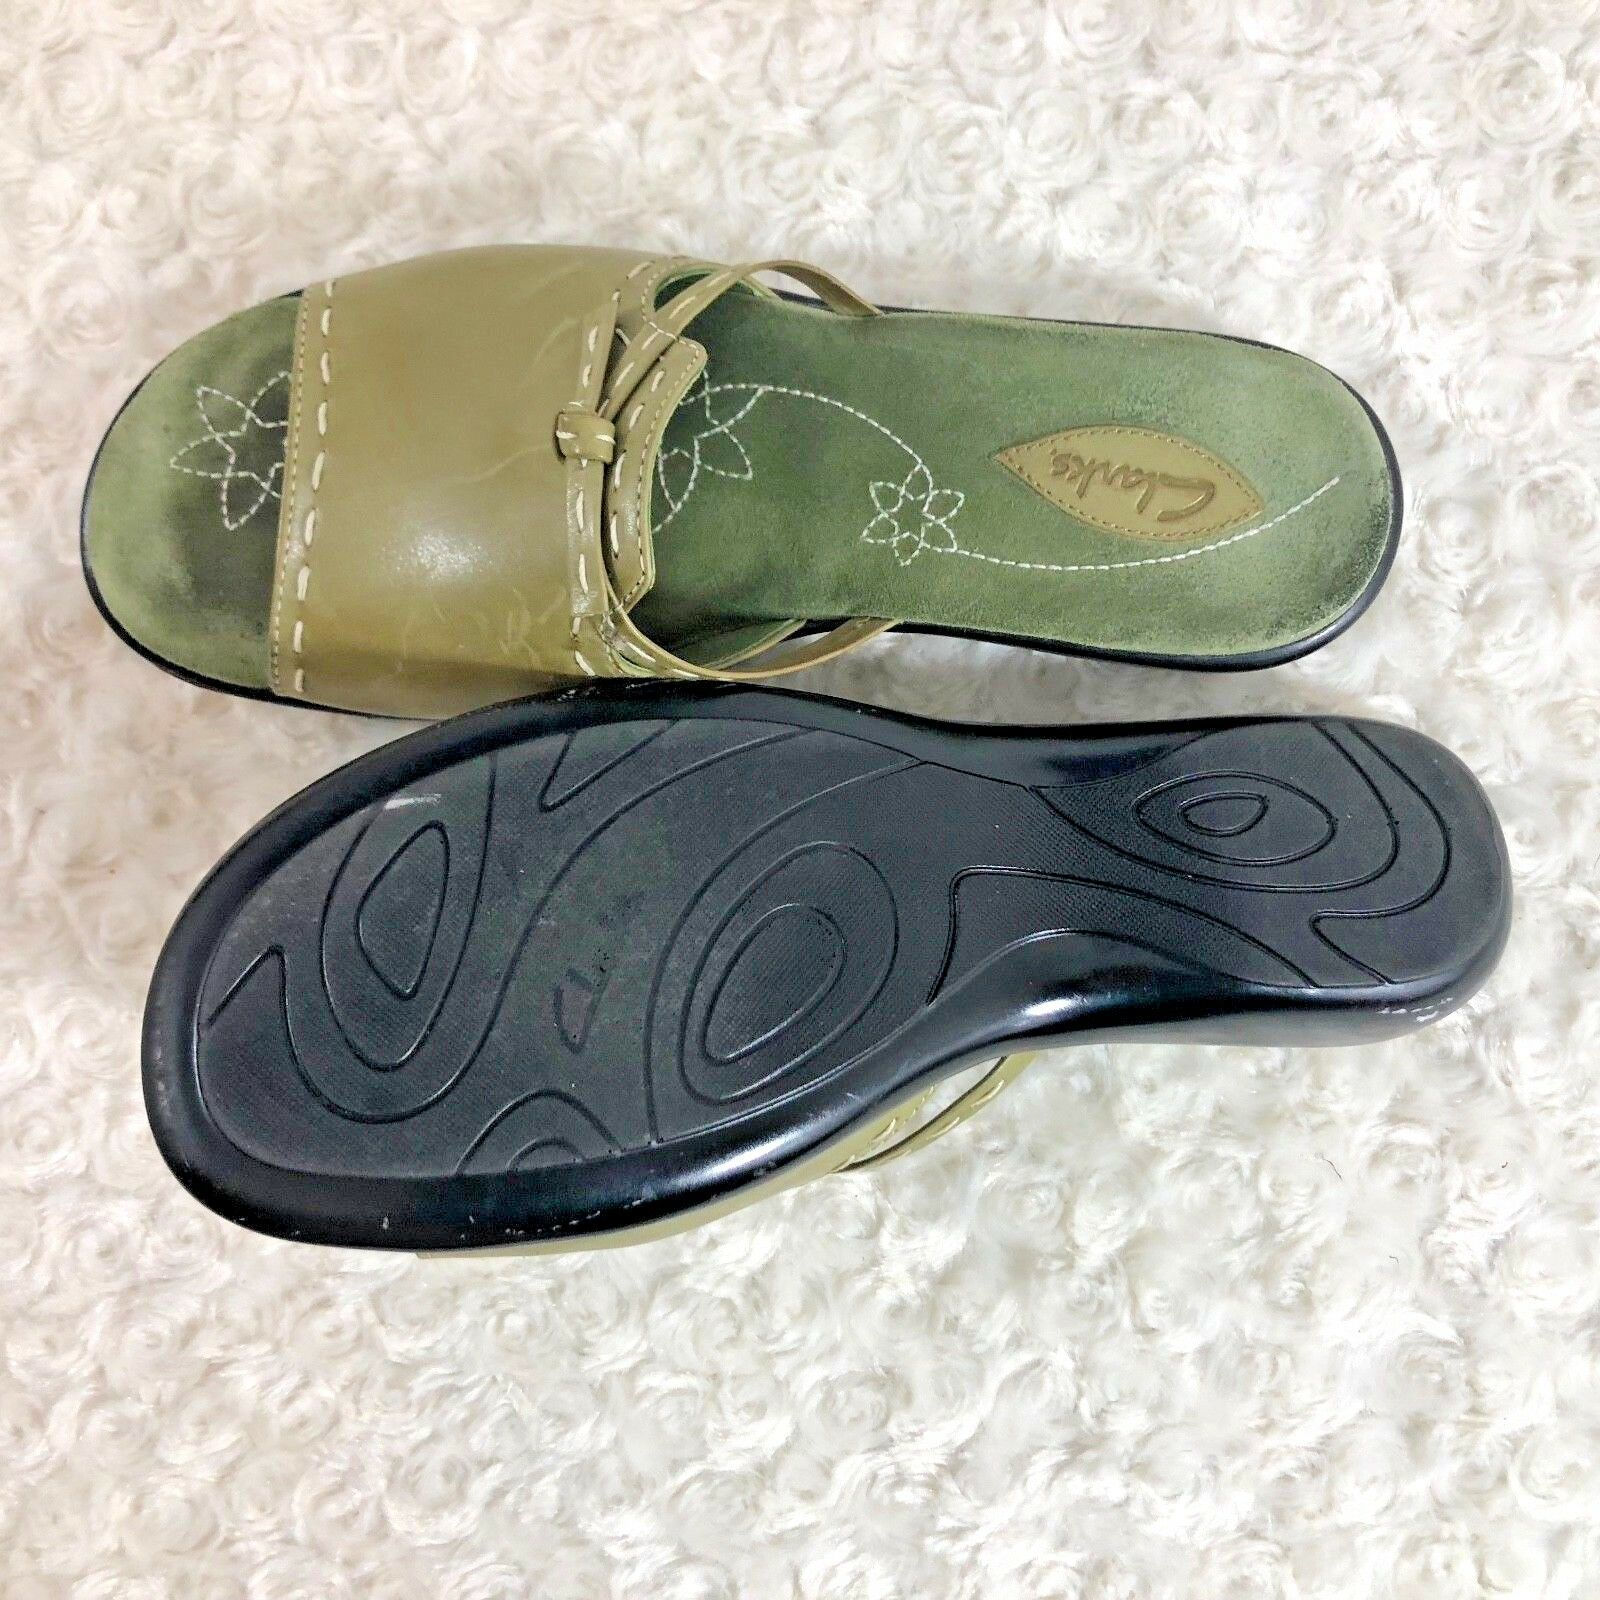 clarks Womens Sz 9 M Green Leather Slide Slip On Flat Shoes